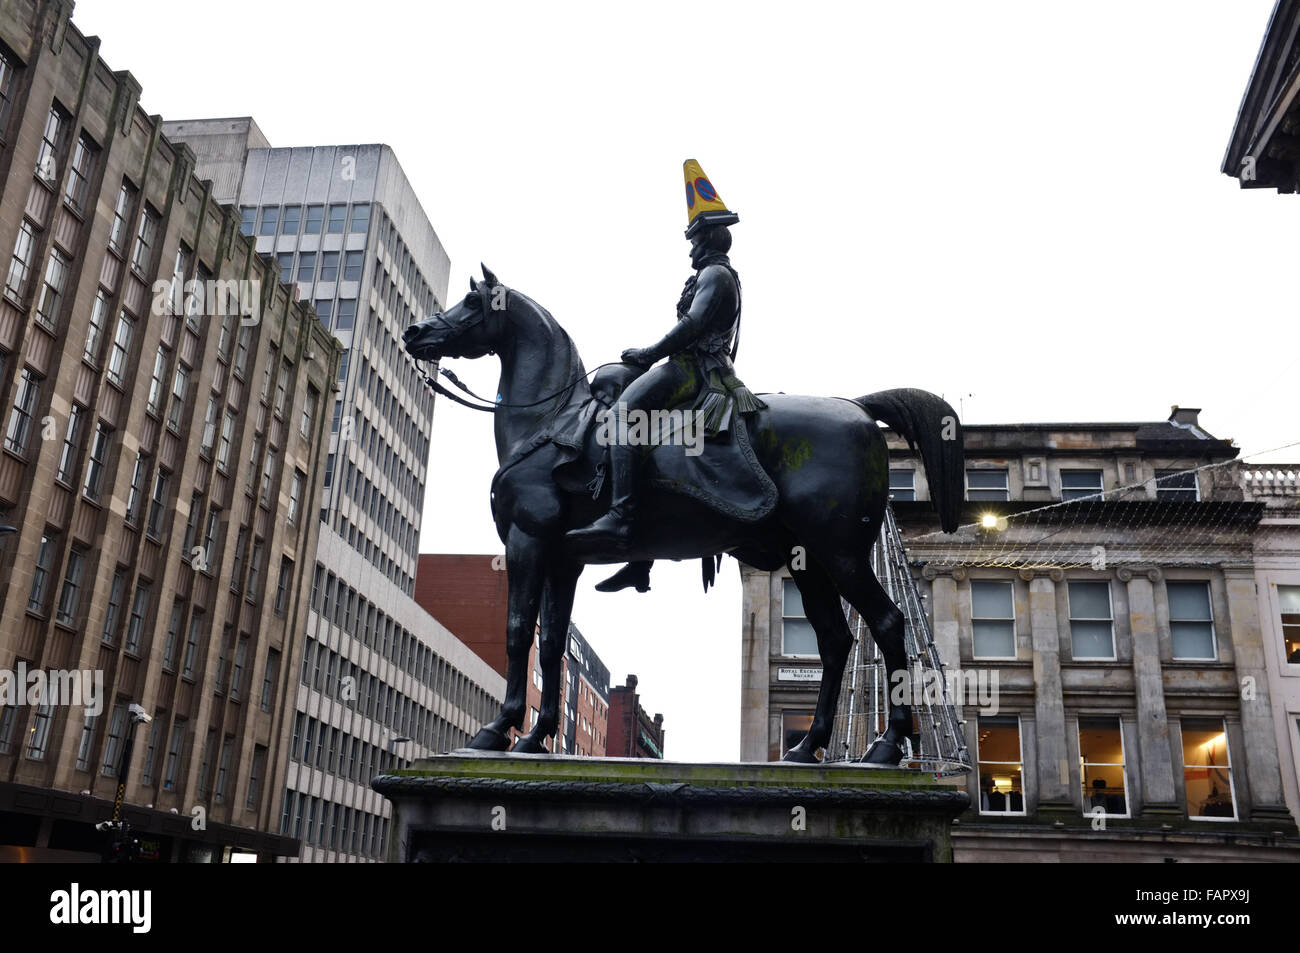 Equestrian statue of the Duke of Wellington in Glasgow with requisite cone on the Duke's head. - Stock Image